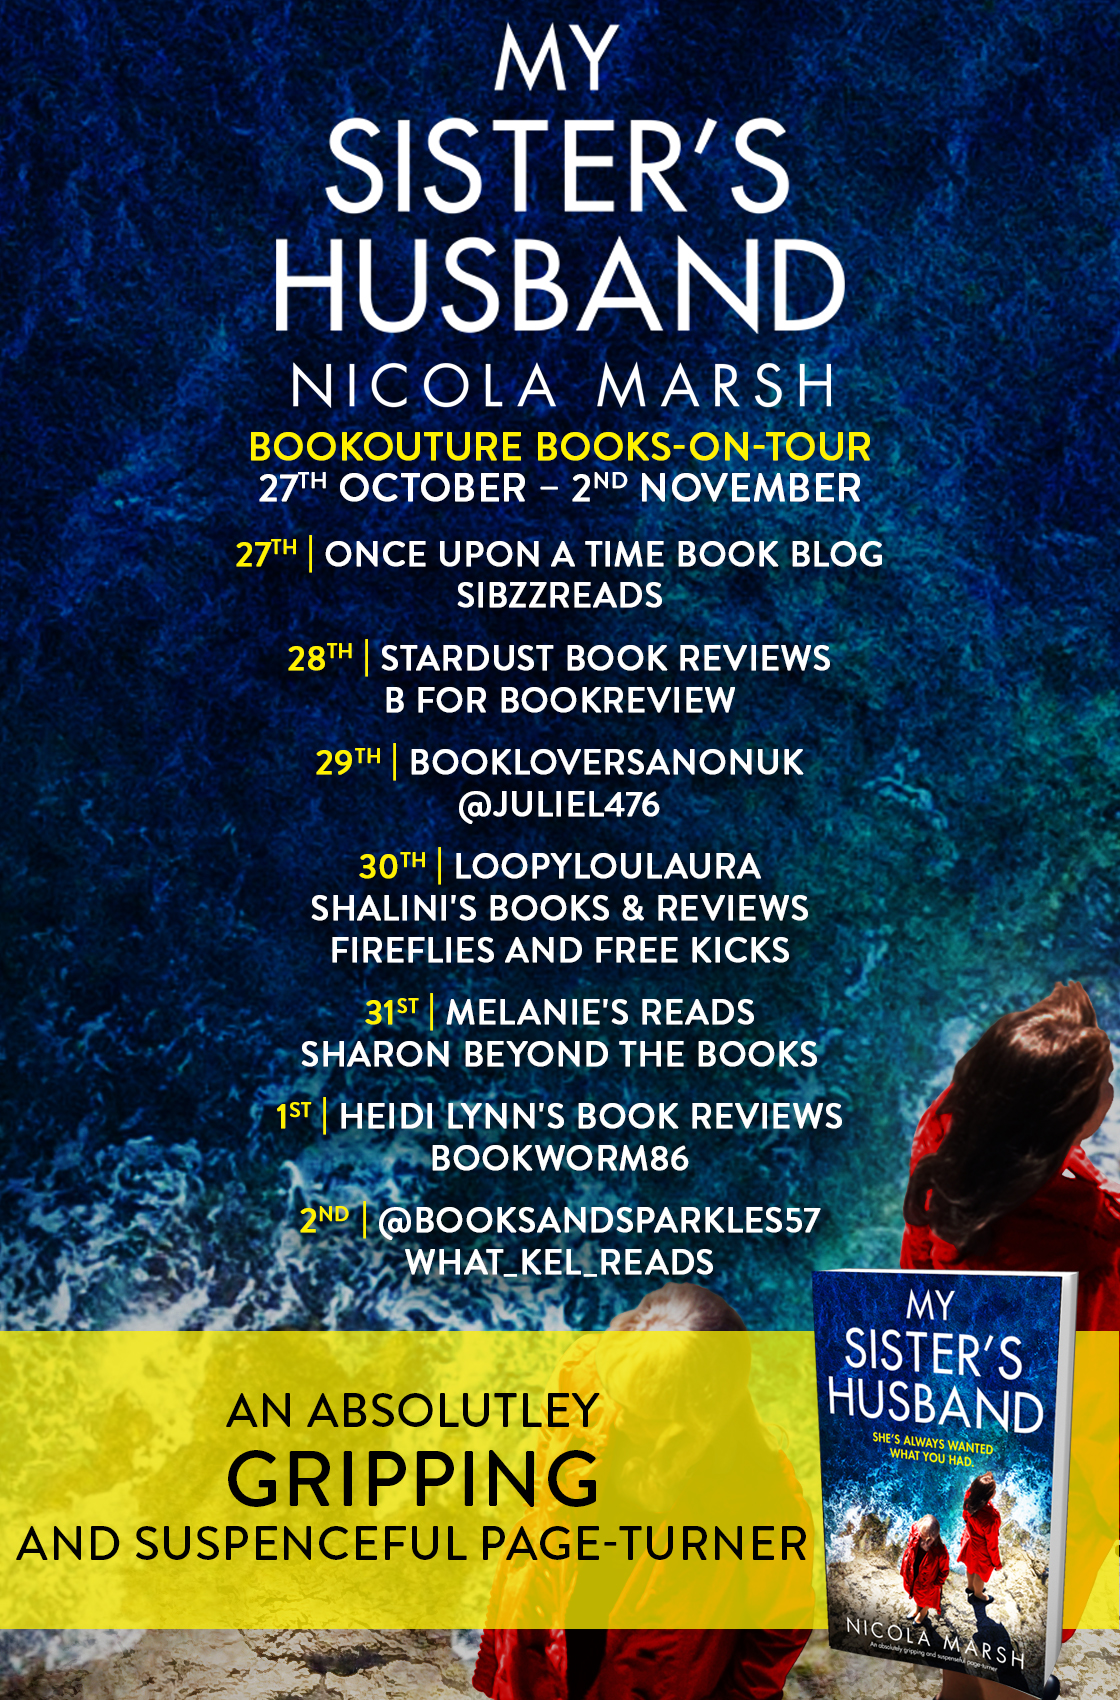 My Sister's Husband blog tour banner